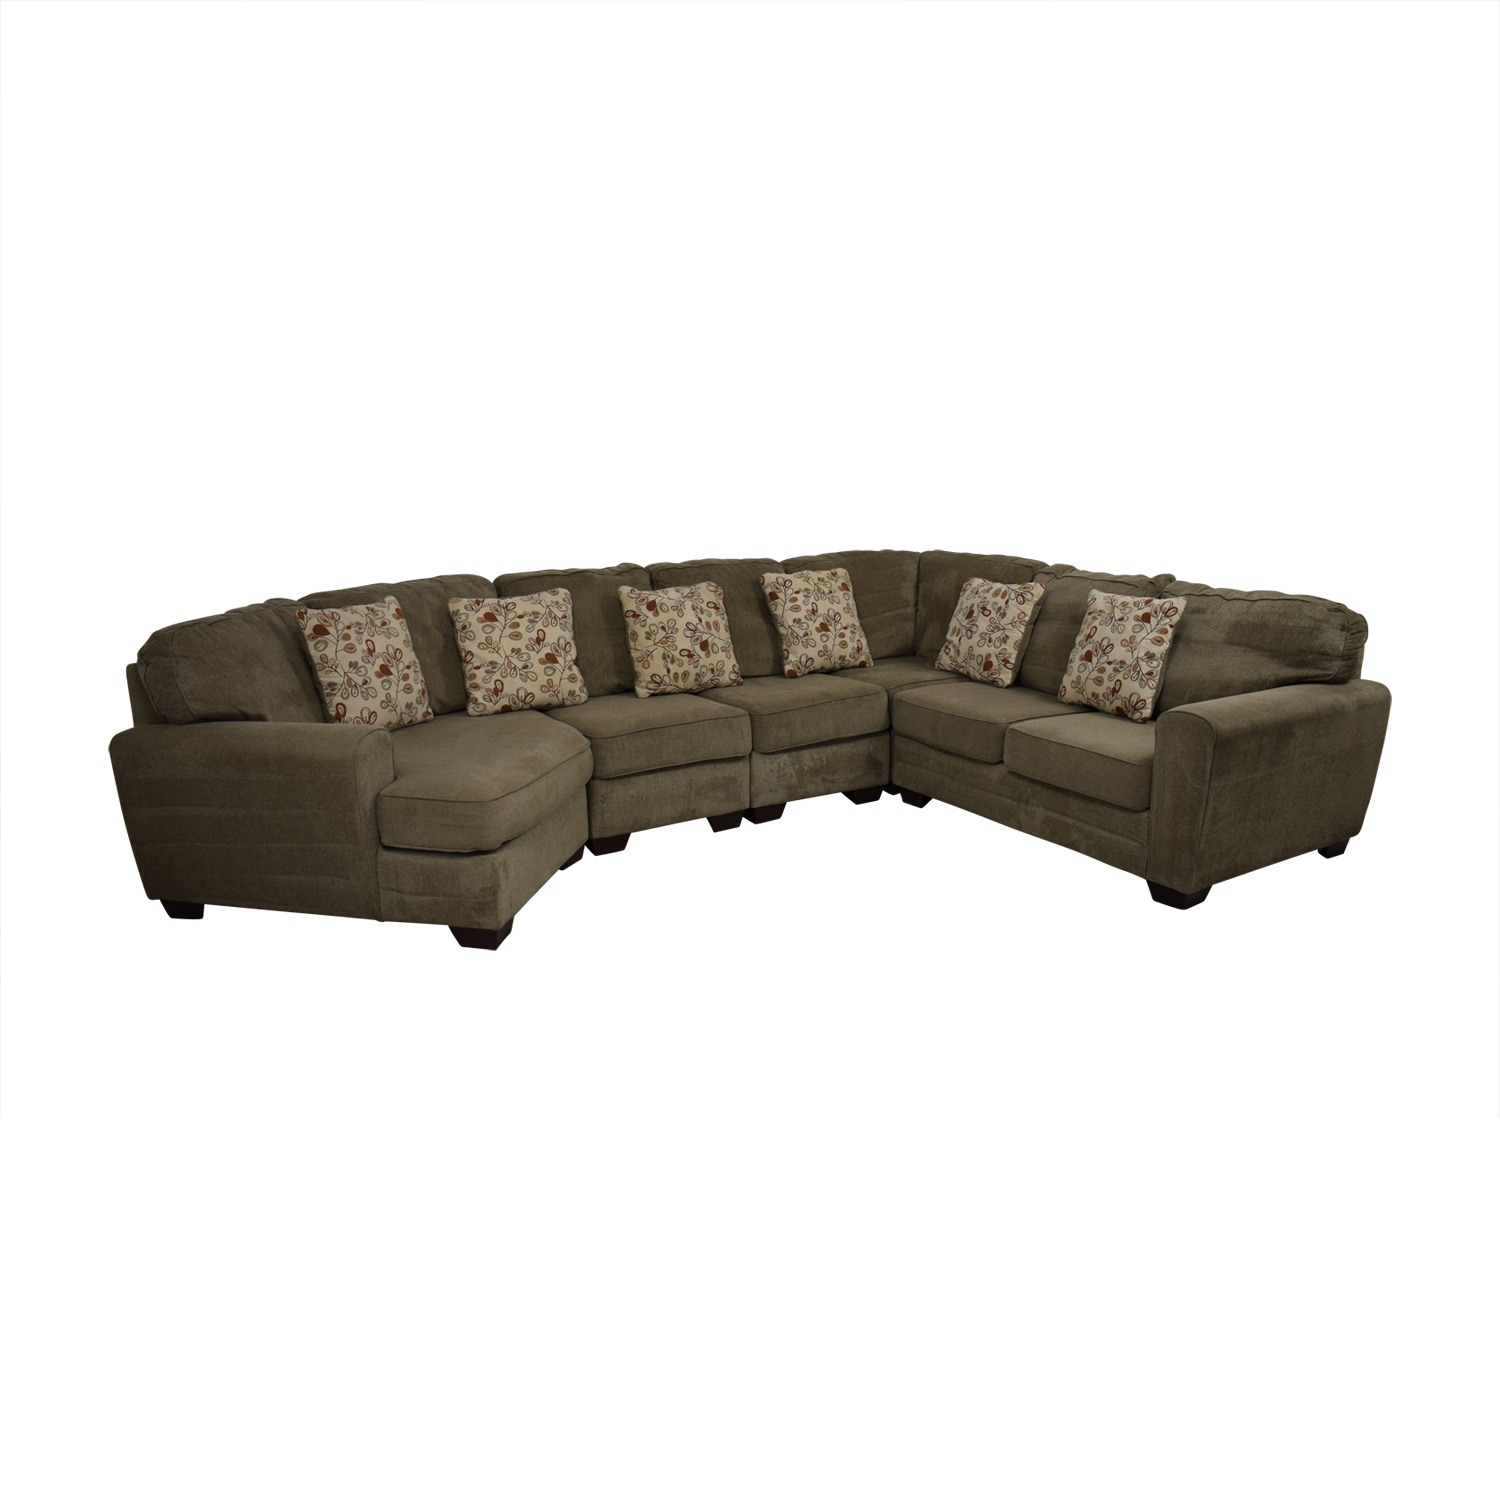 Ashley Furniture Tan L-Shaped Curved Sectional with Angled Seat Ashley Furniture